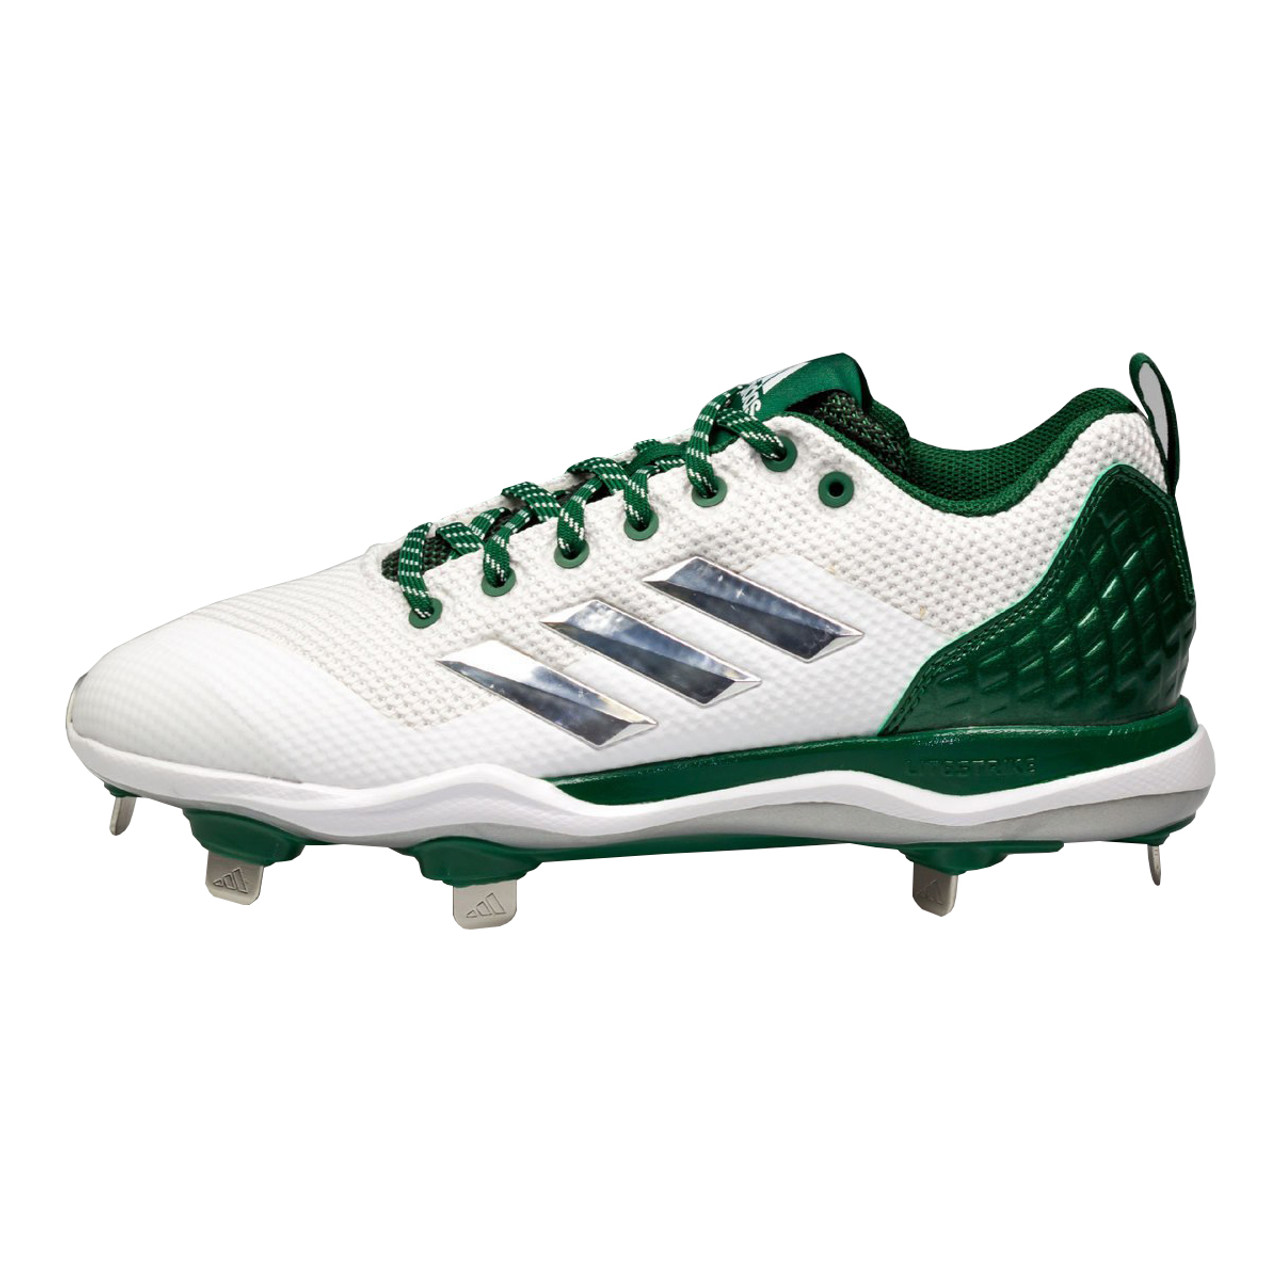 Adidas Power Alley 5 Cleats | Men's